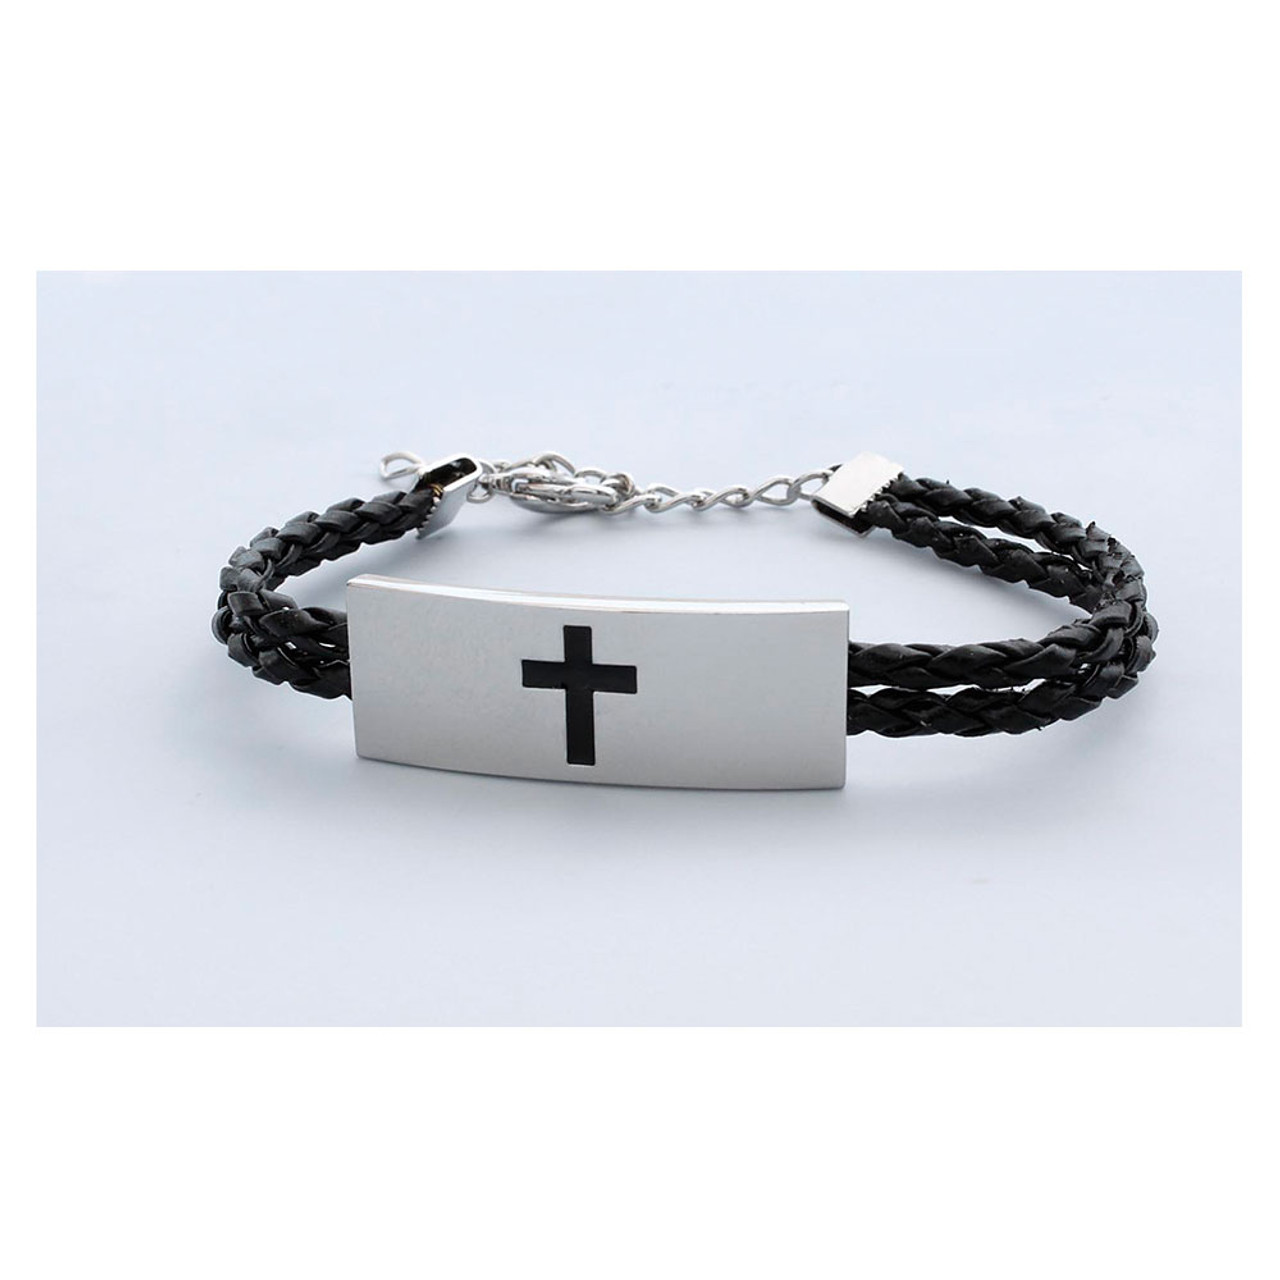 Woven Leather Bracelet with Cross